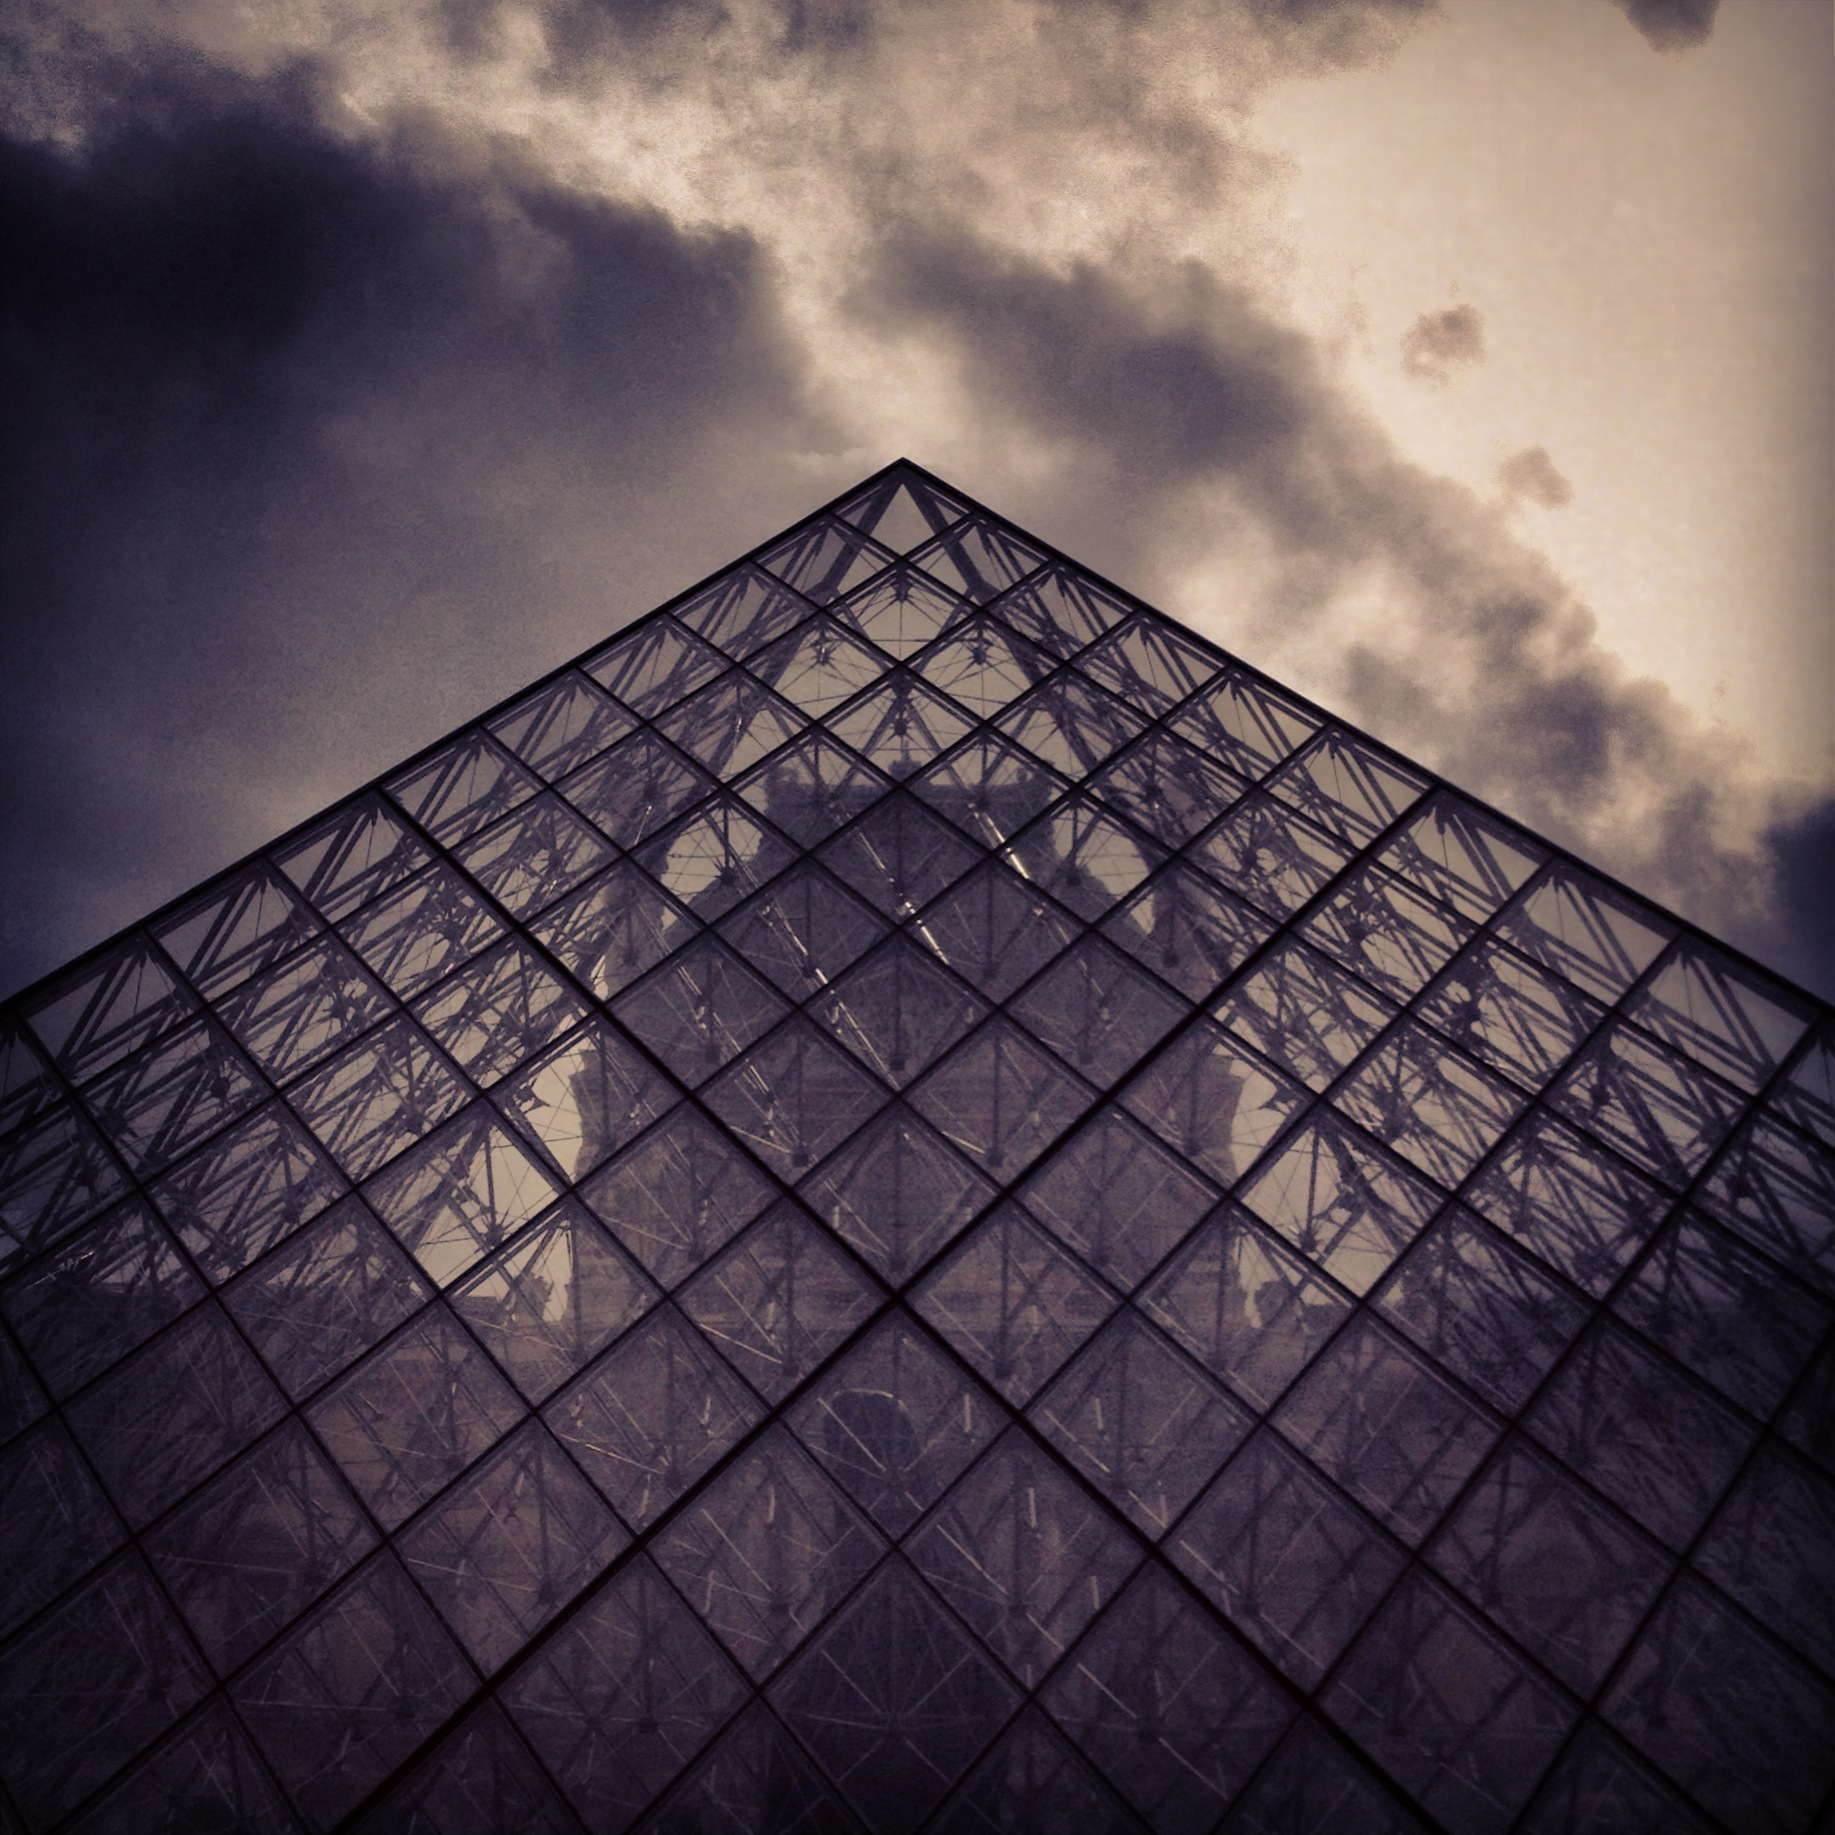 20. Louvre is in the air at Paris' famous museum.